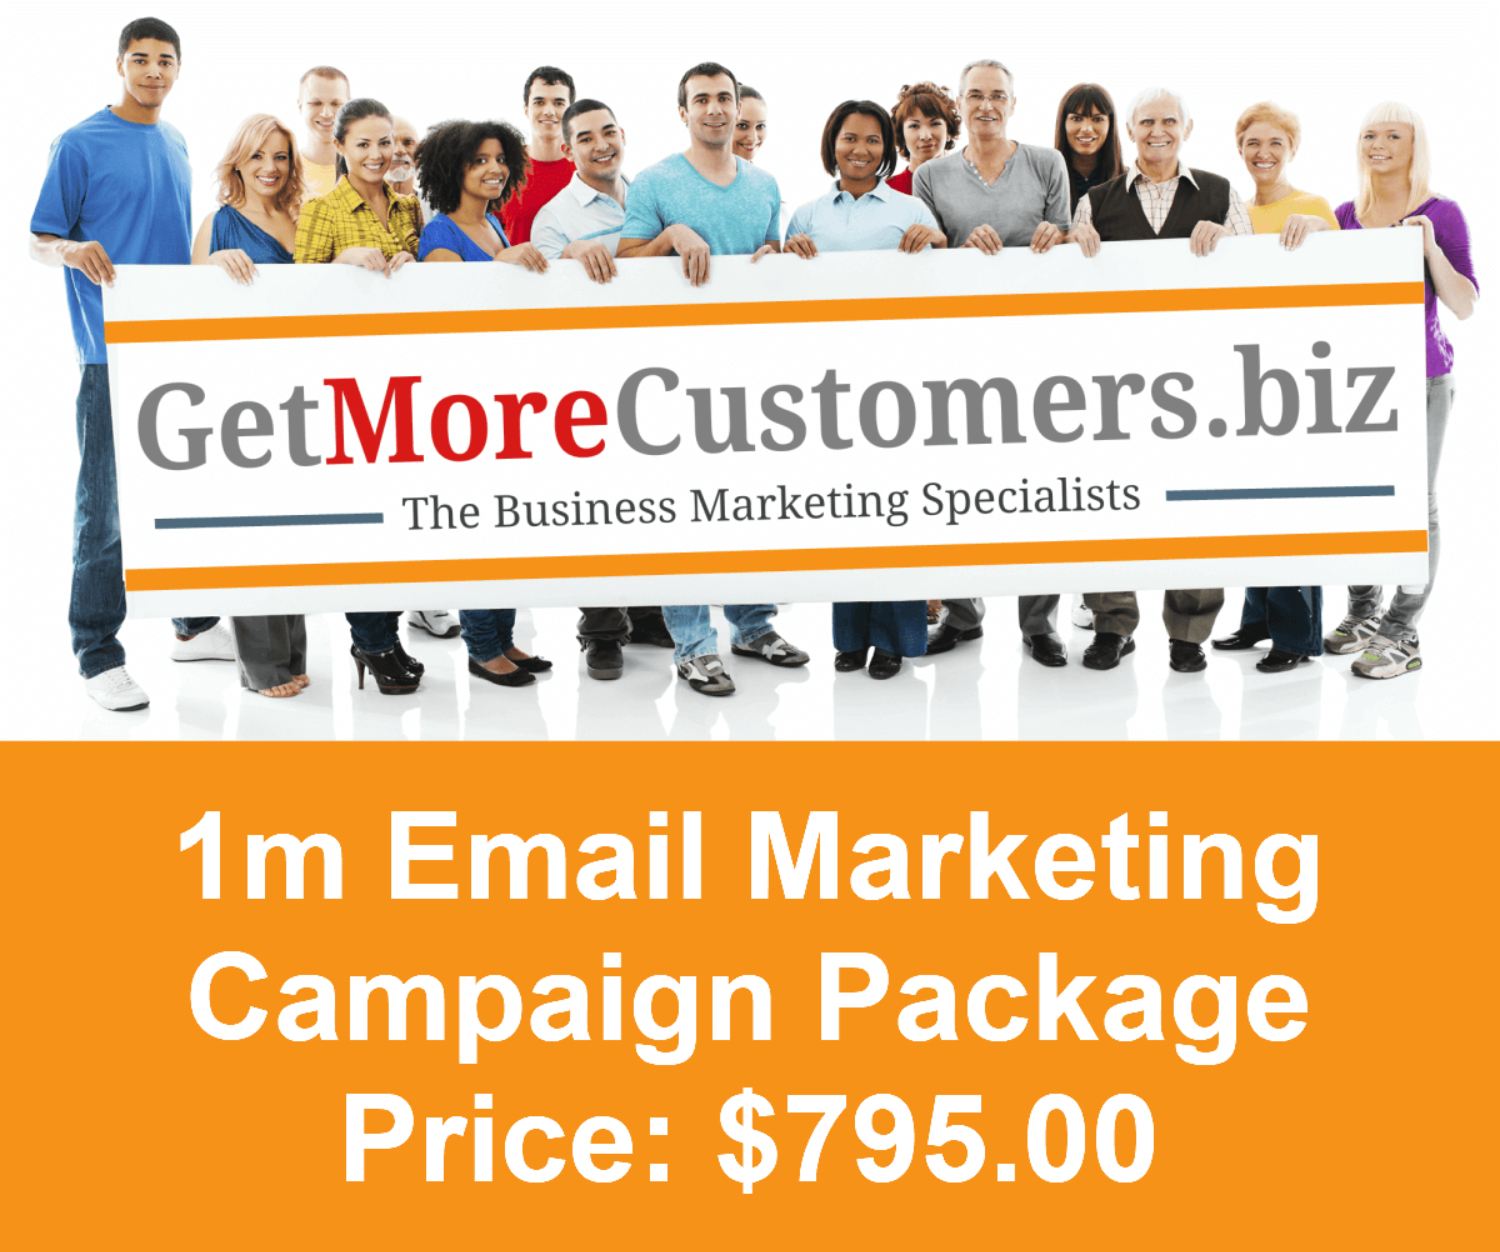 One Million Email Campaign - $795.00